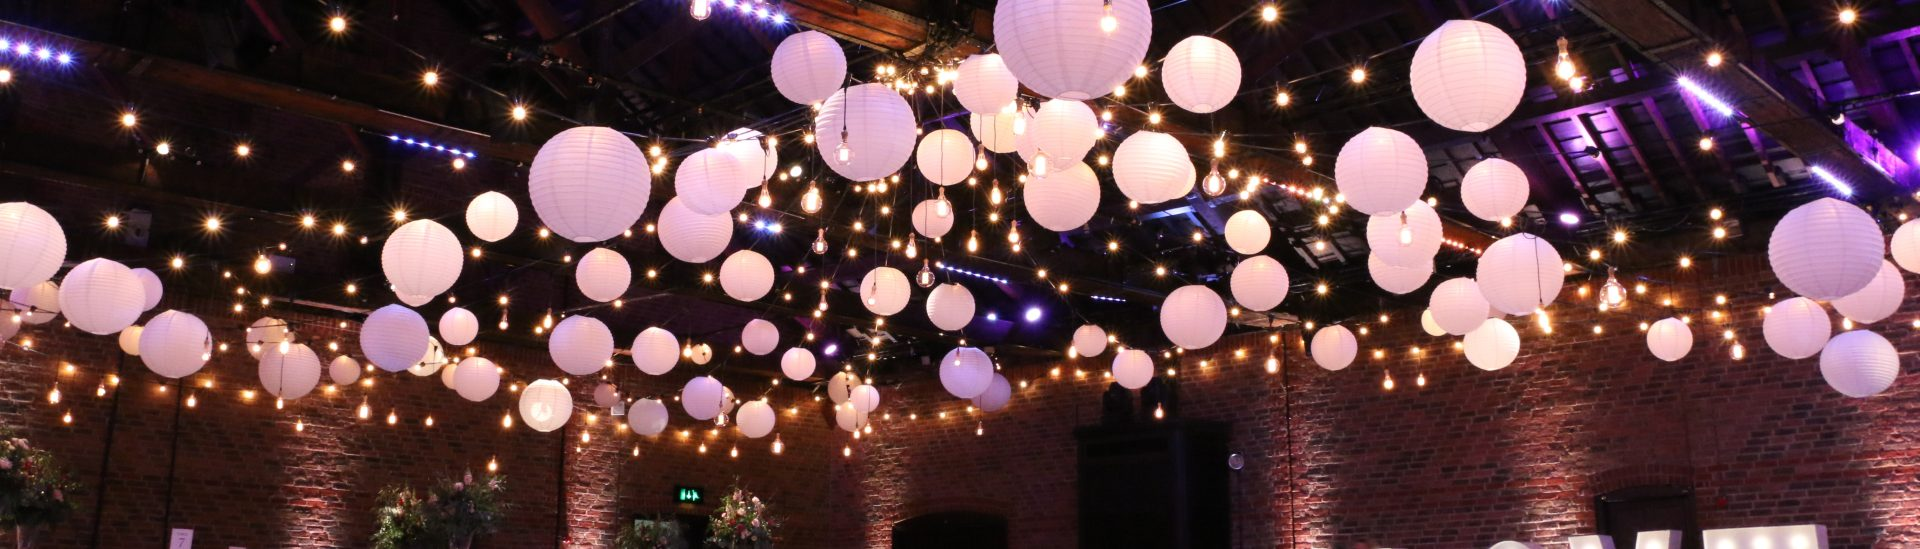 Axnoller-Wedding-Lighting-Hire-3